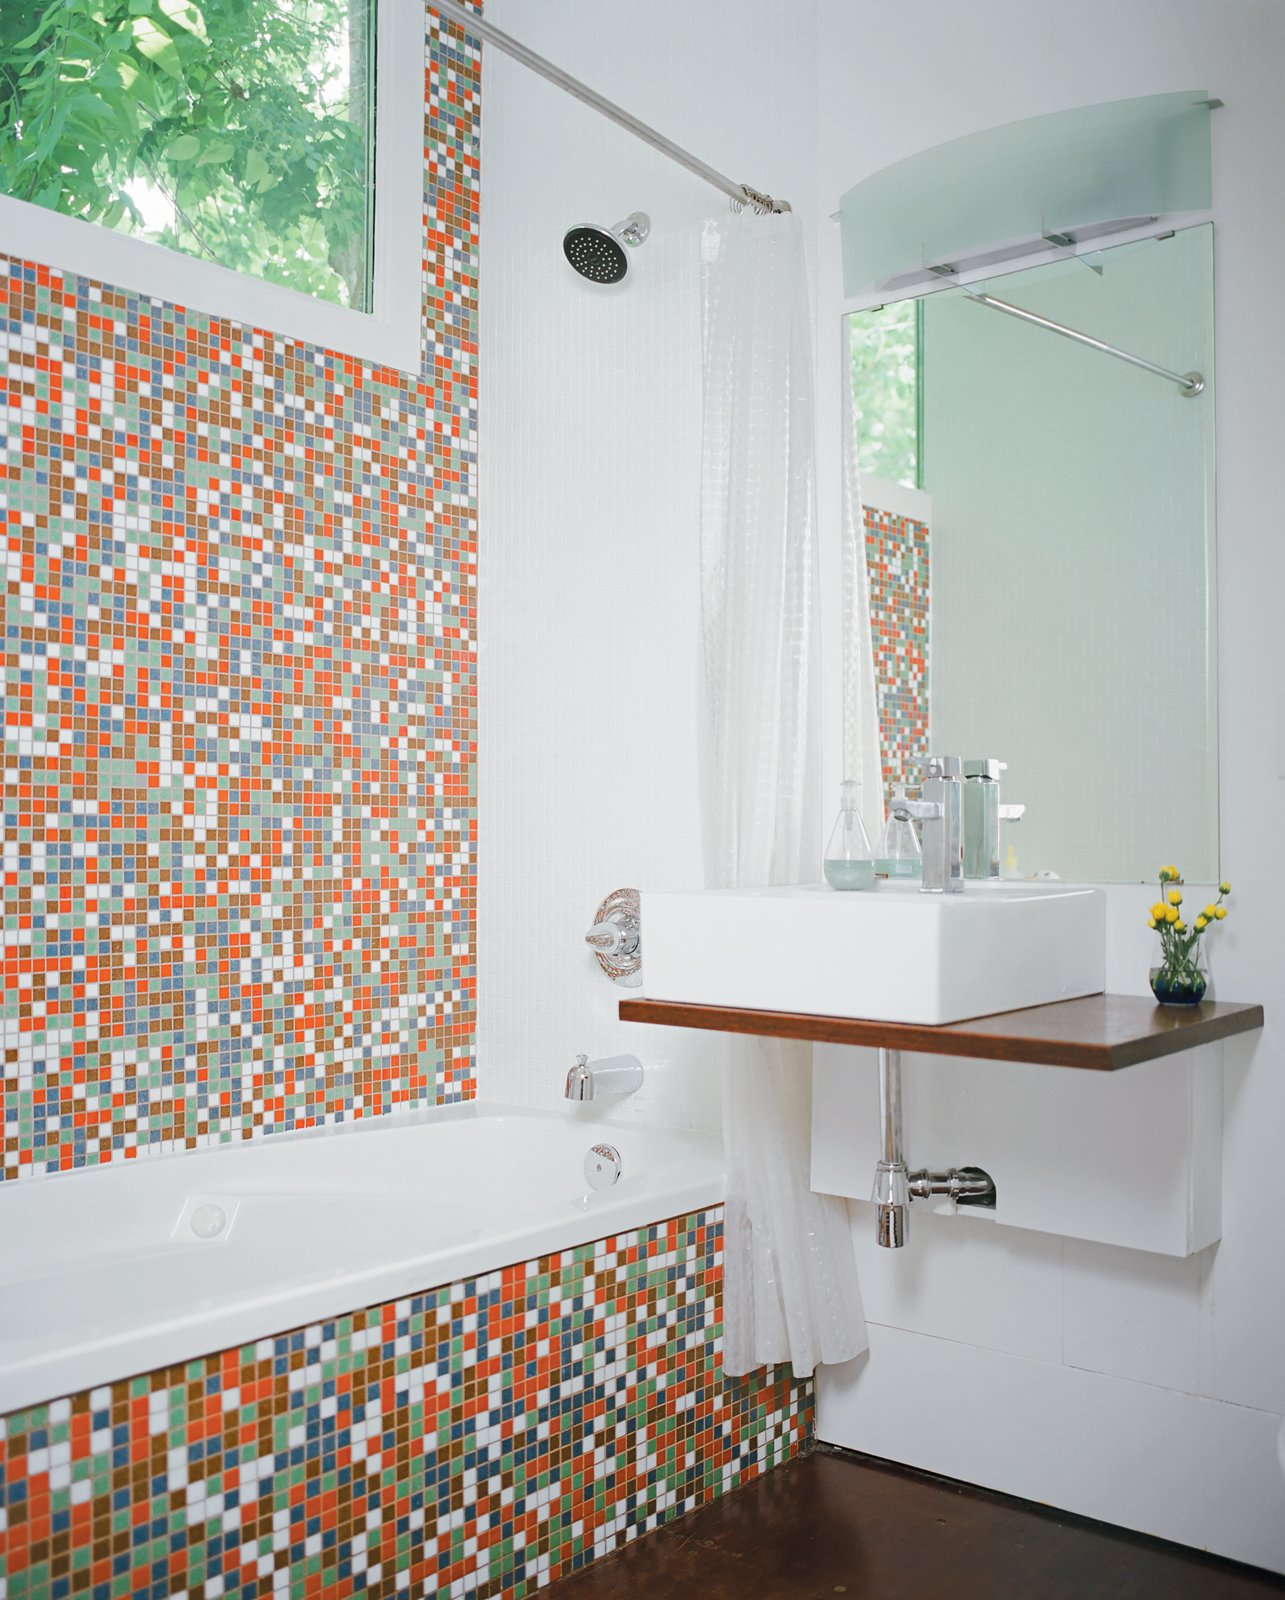 Bath, Mosaic Tile, Wall Mount, and Vessel Robertson--with the help of developers Katie Nichols and John Walker, who were heavily involved in the design process--finished the guest bathroom with Modwalls tiles and a sink they found on eBay. They used a piece of marine plywood, leftover from building the front-porch steps, to create a counter on which the sink could sit--and where the family can rest their toothbrushes. To the right of the sink is a Toto dual-flush toilet, which is great for conserving water but has proven problematic for toilet training, as American potty seats aren't designed to fit these Japanese basins.  Best Bath Vessel Mosaic Tile Photos from The Shipping Muse